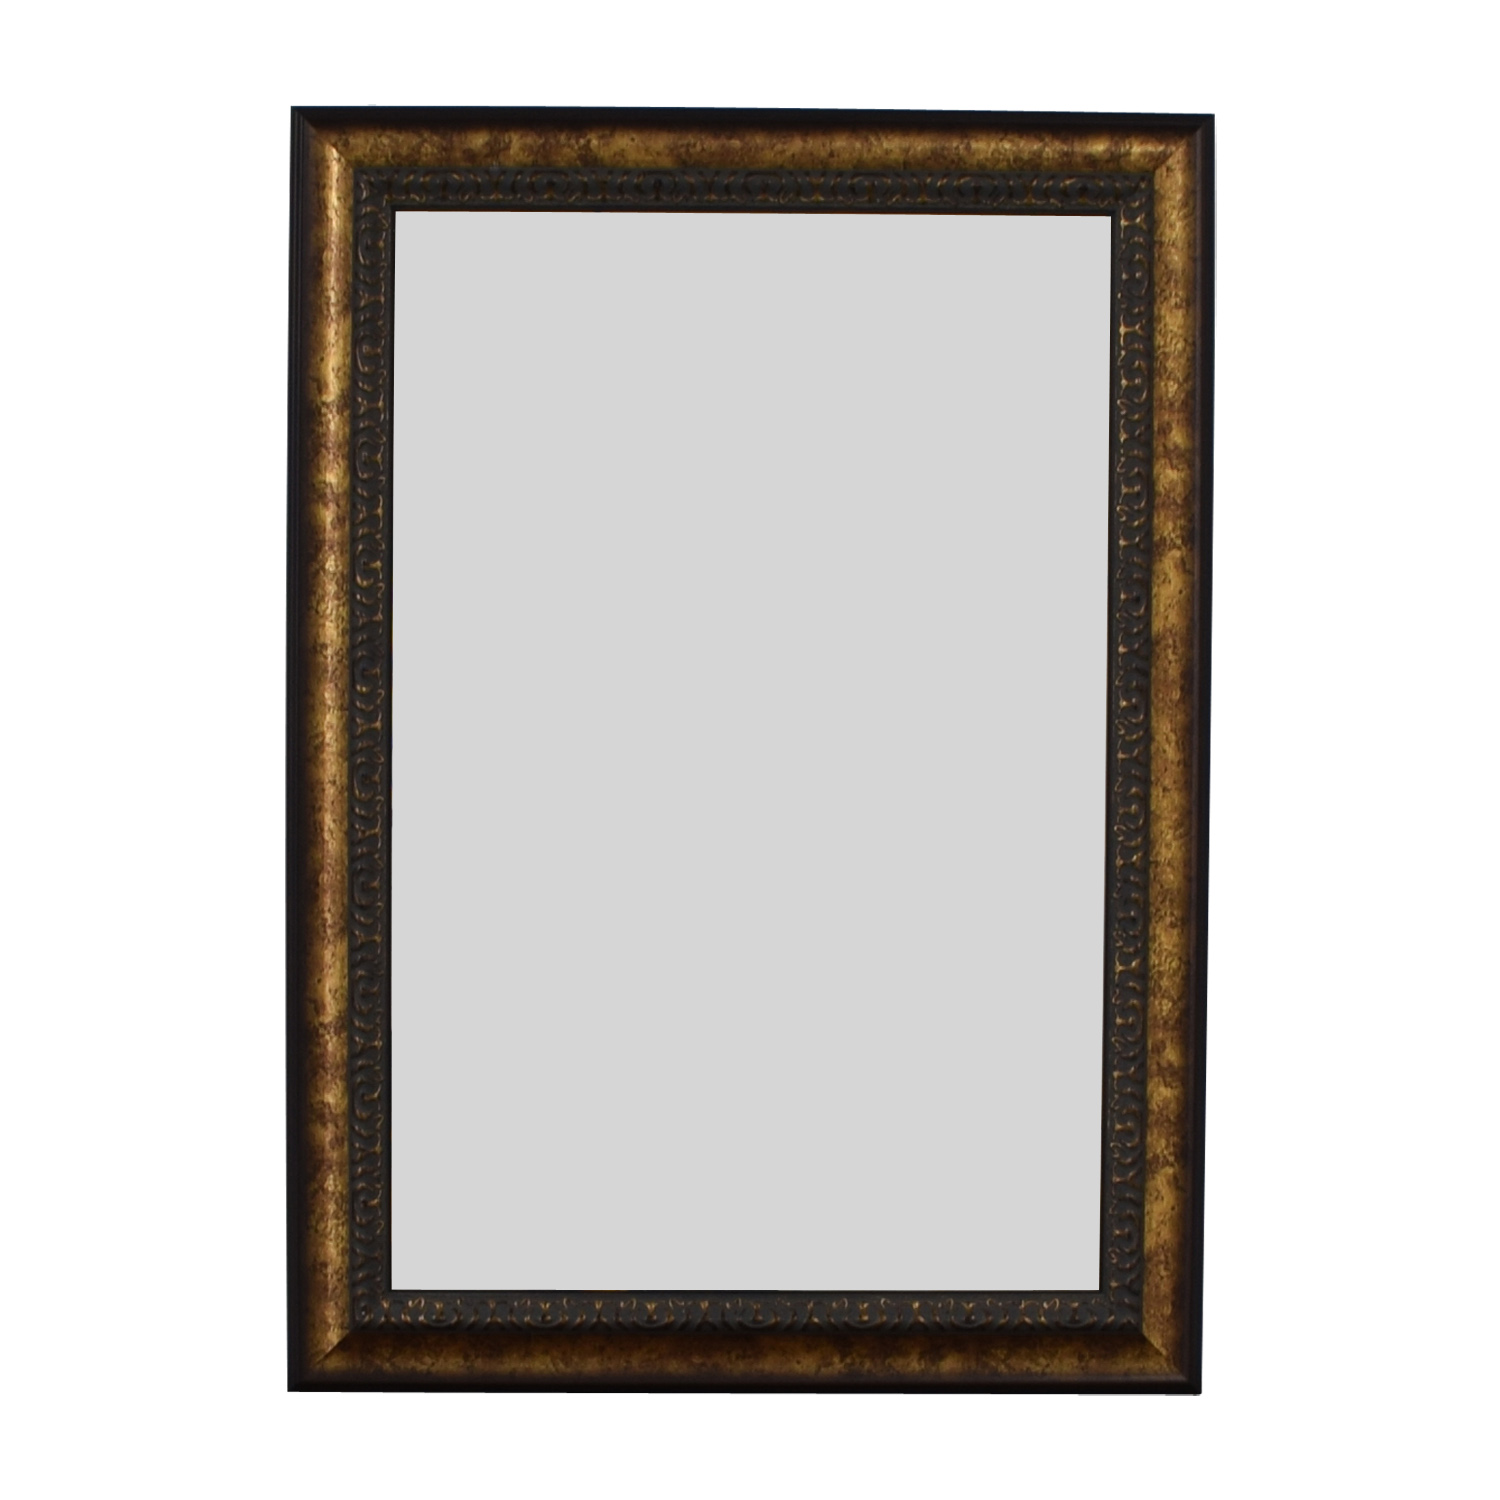 Coaster Fine Furniture Coaster Fine Furniture Bronze Beveled Wall Mirror discount